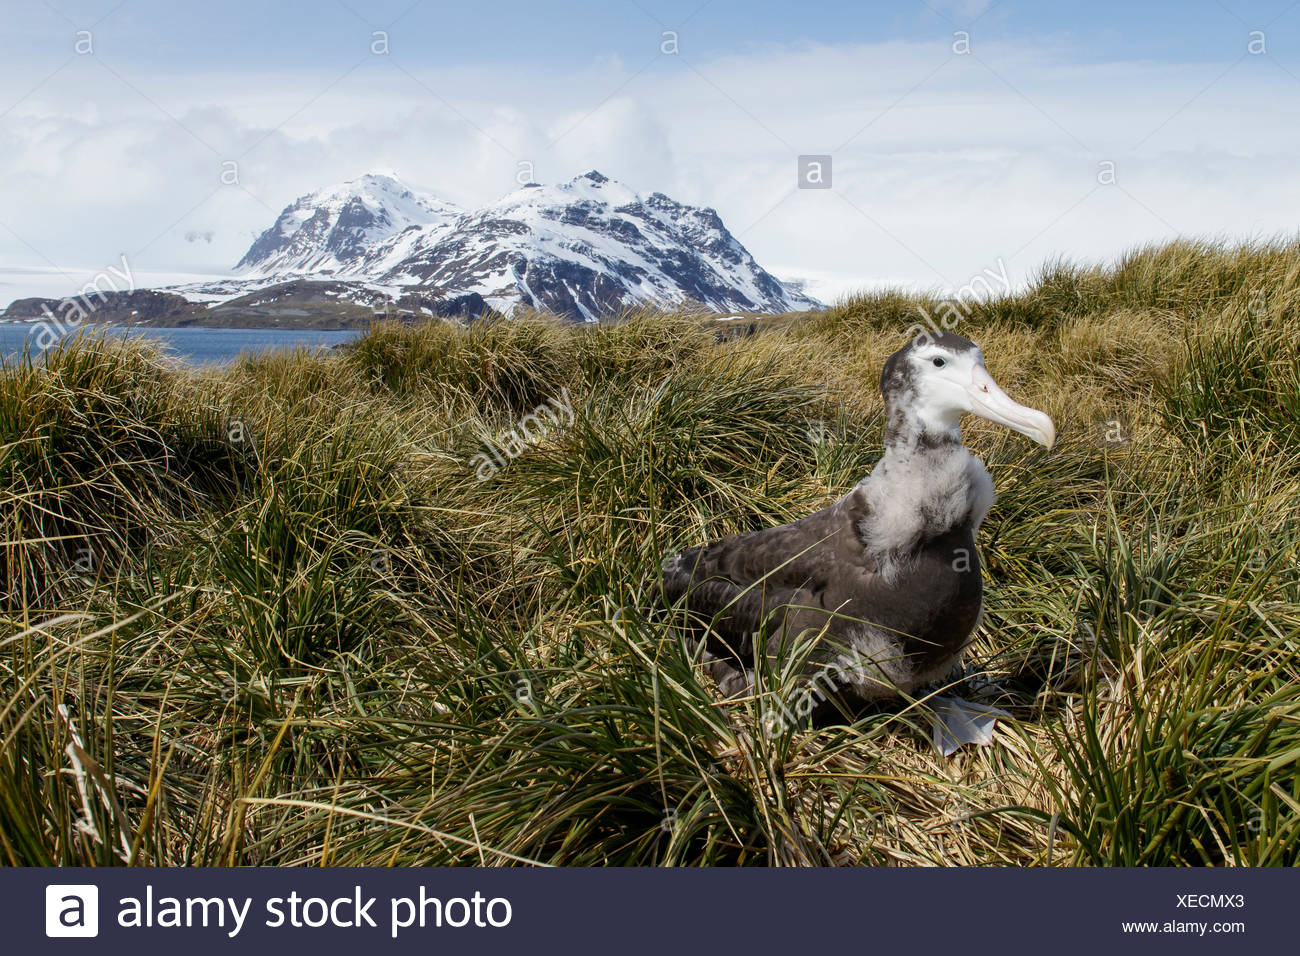 Wandering Albatross (Diomedea exulans) perched on tussock grass on South Georgia Island. - Stock Image